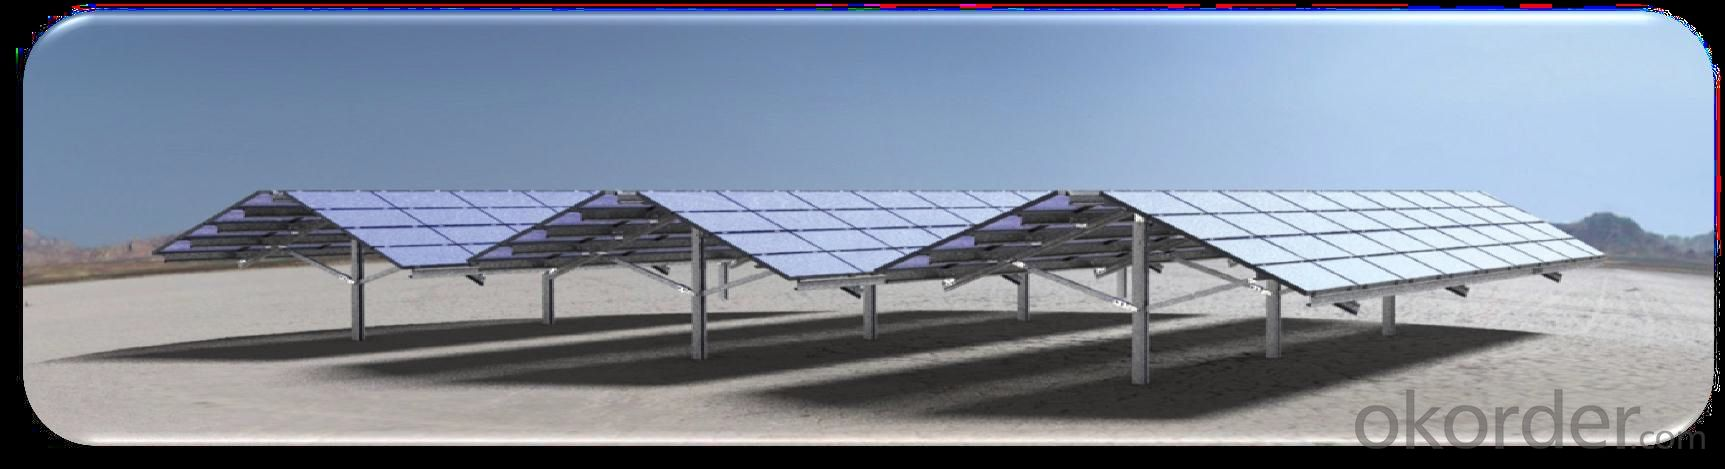 FS Solar Mounting System-Continuous